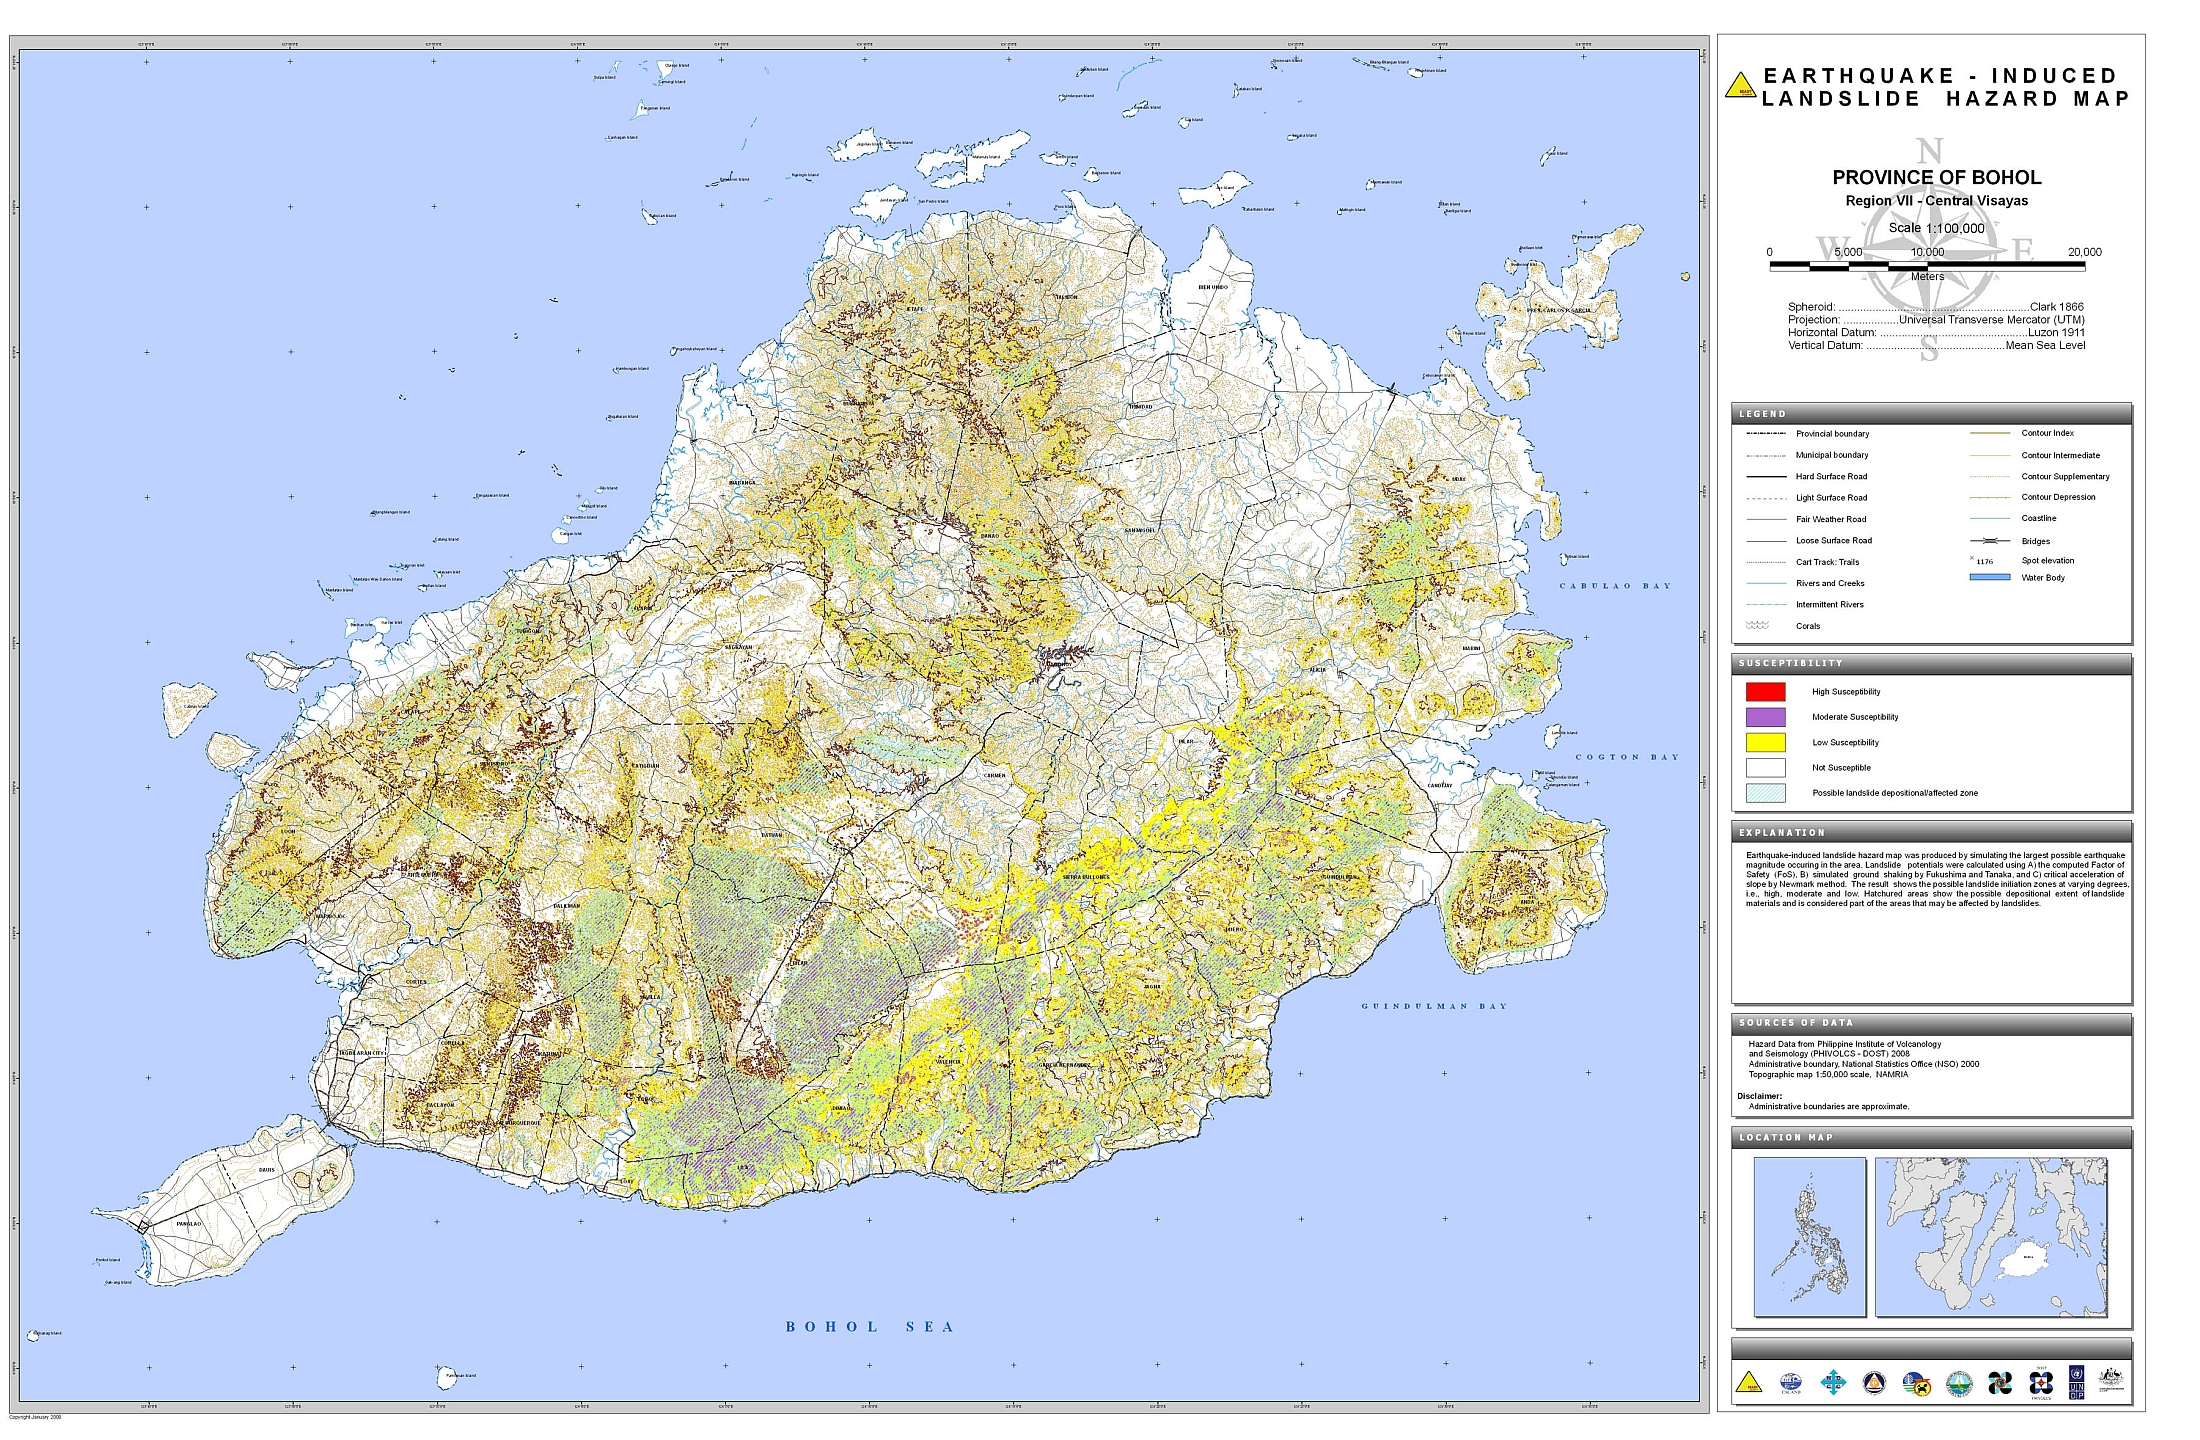 Bohol Earthquake-Induced Landslide Hazard Map